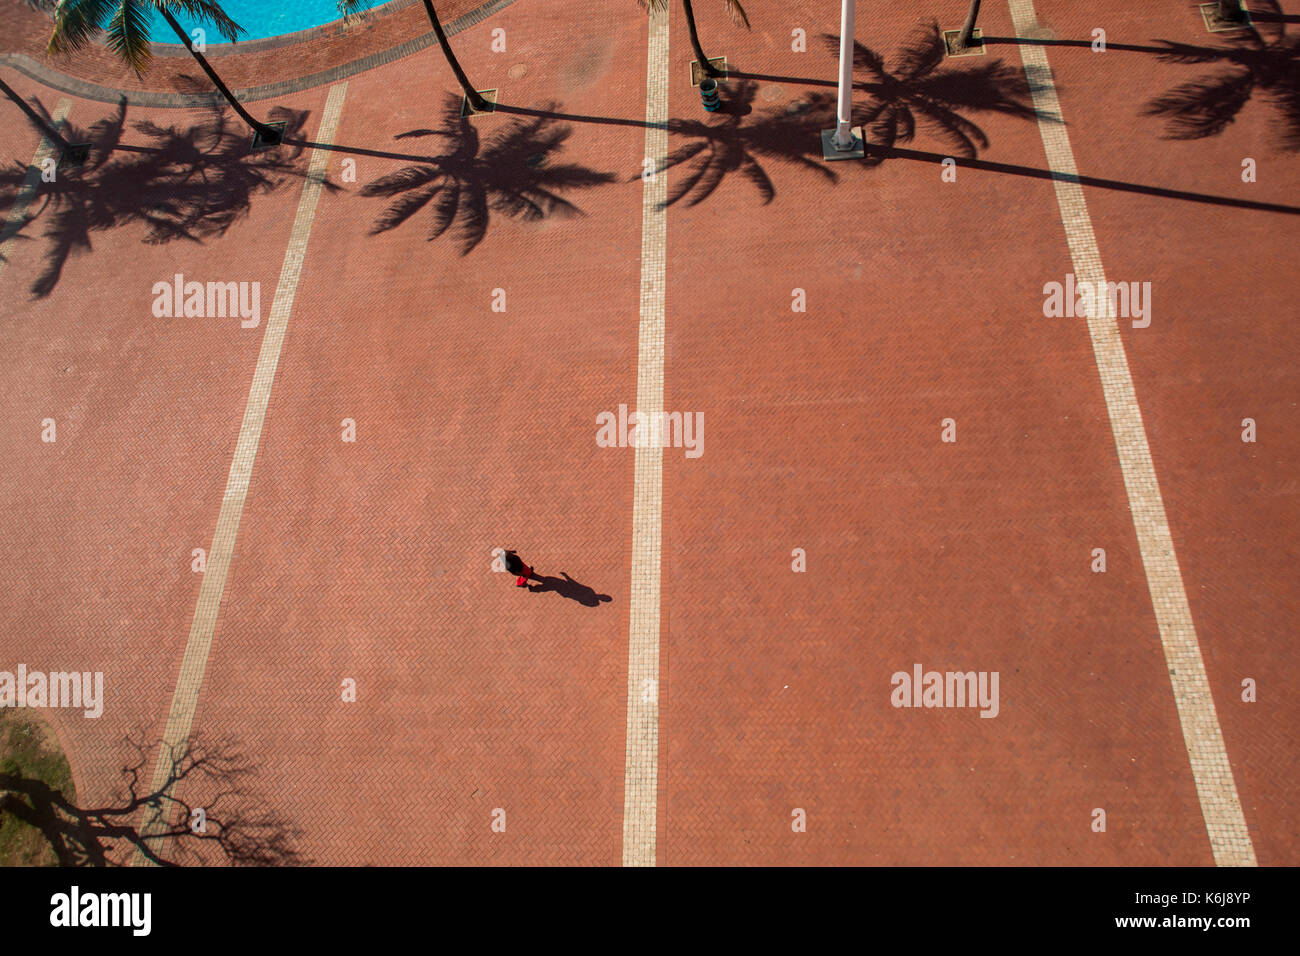 Aerial view of promenade on Golden Mile on Durban, South Africa - Stock Image